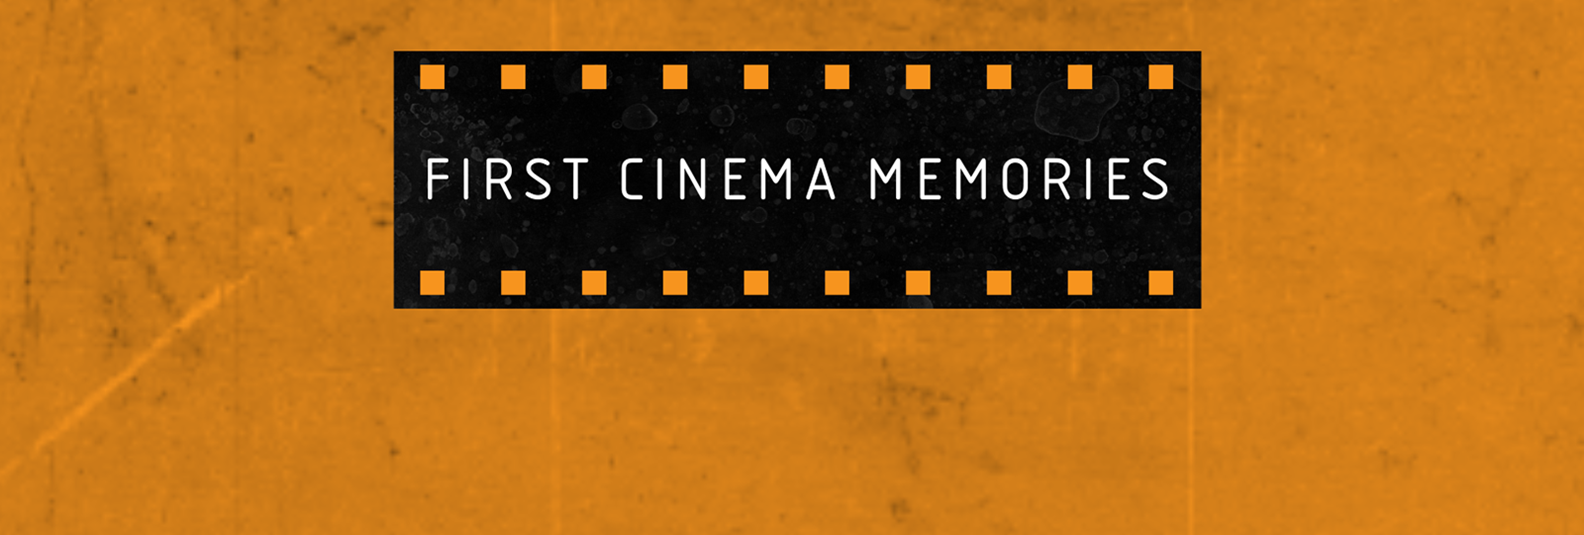 first cinema memories